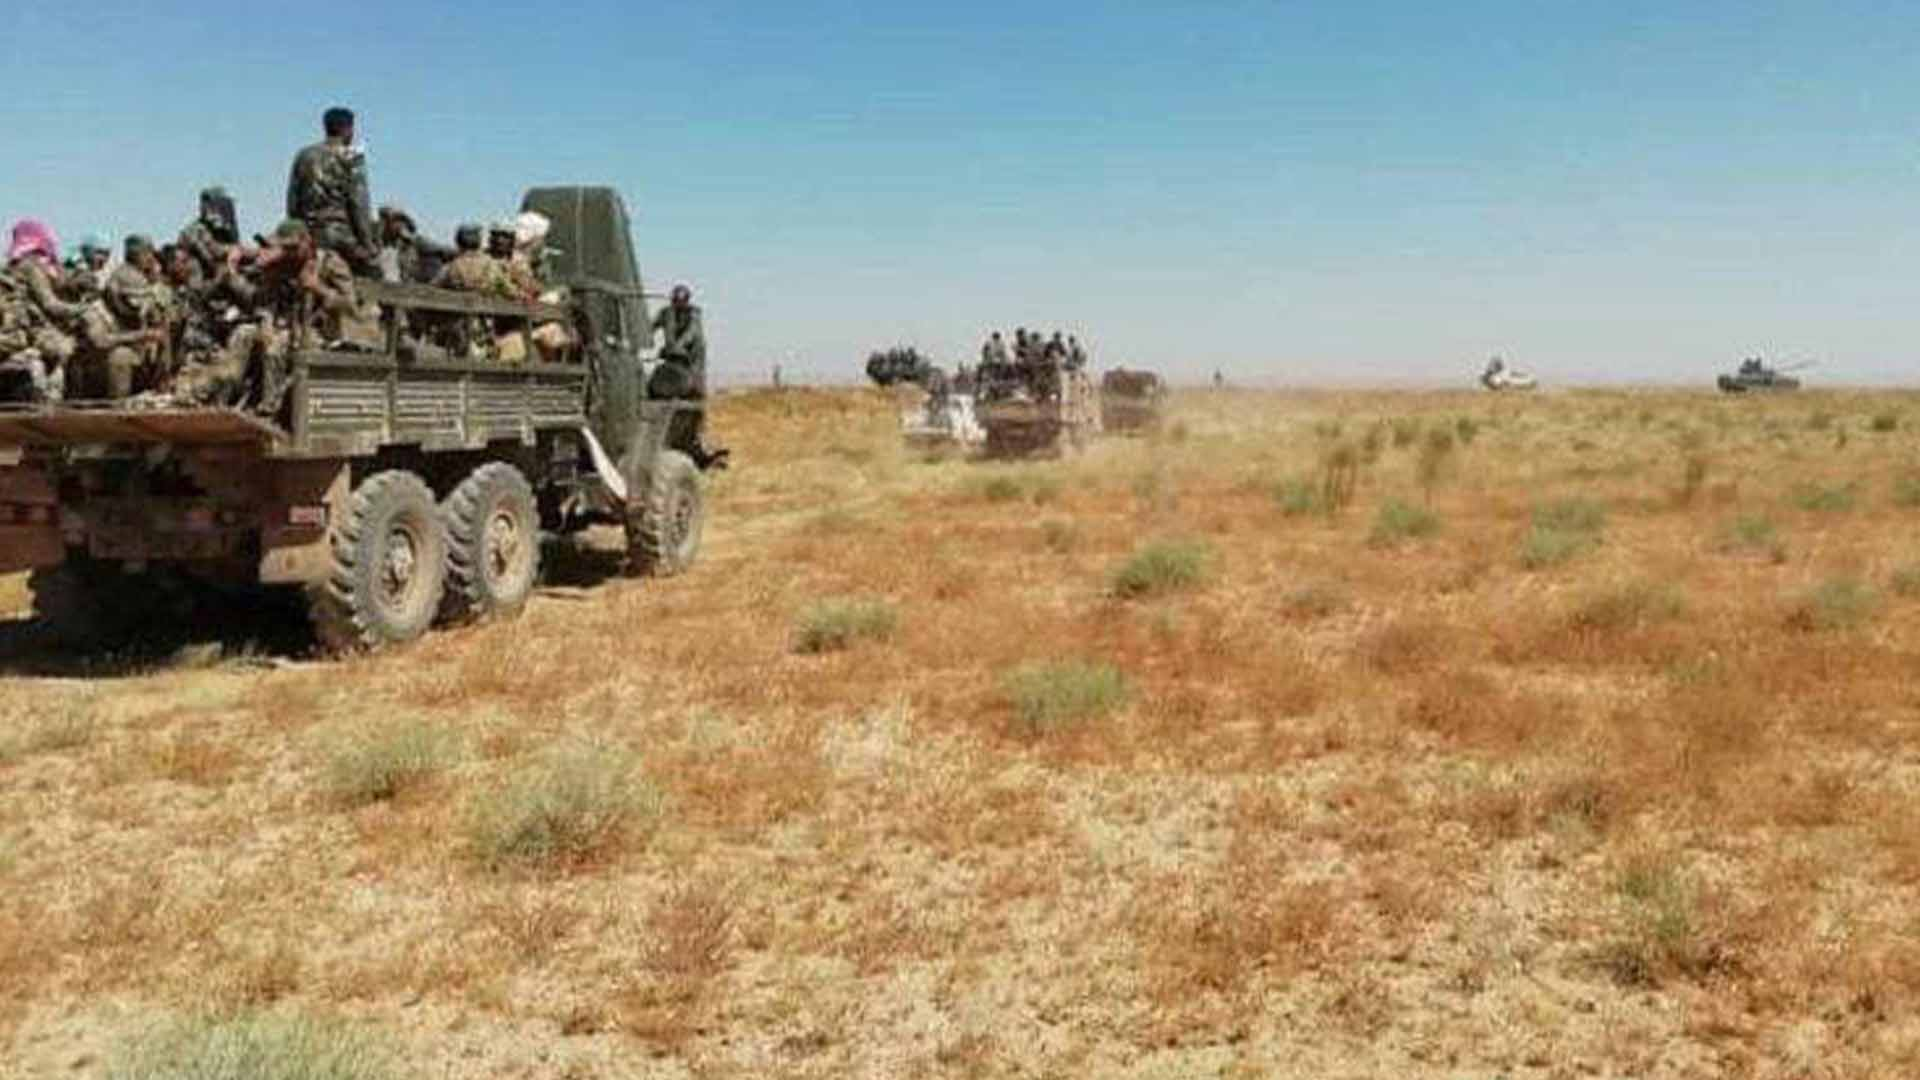 Military vehicles of the government forces in al-Shula desert, south of Deir ez-Zor